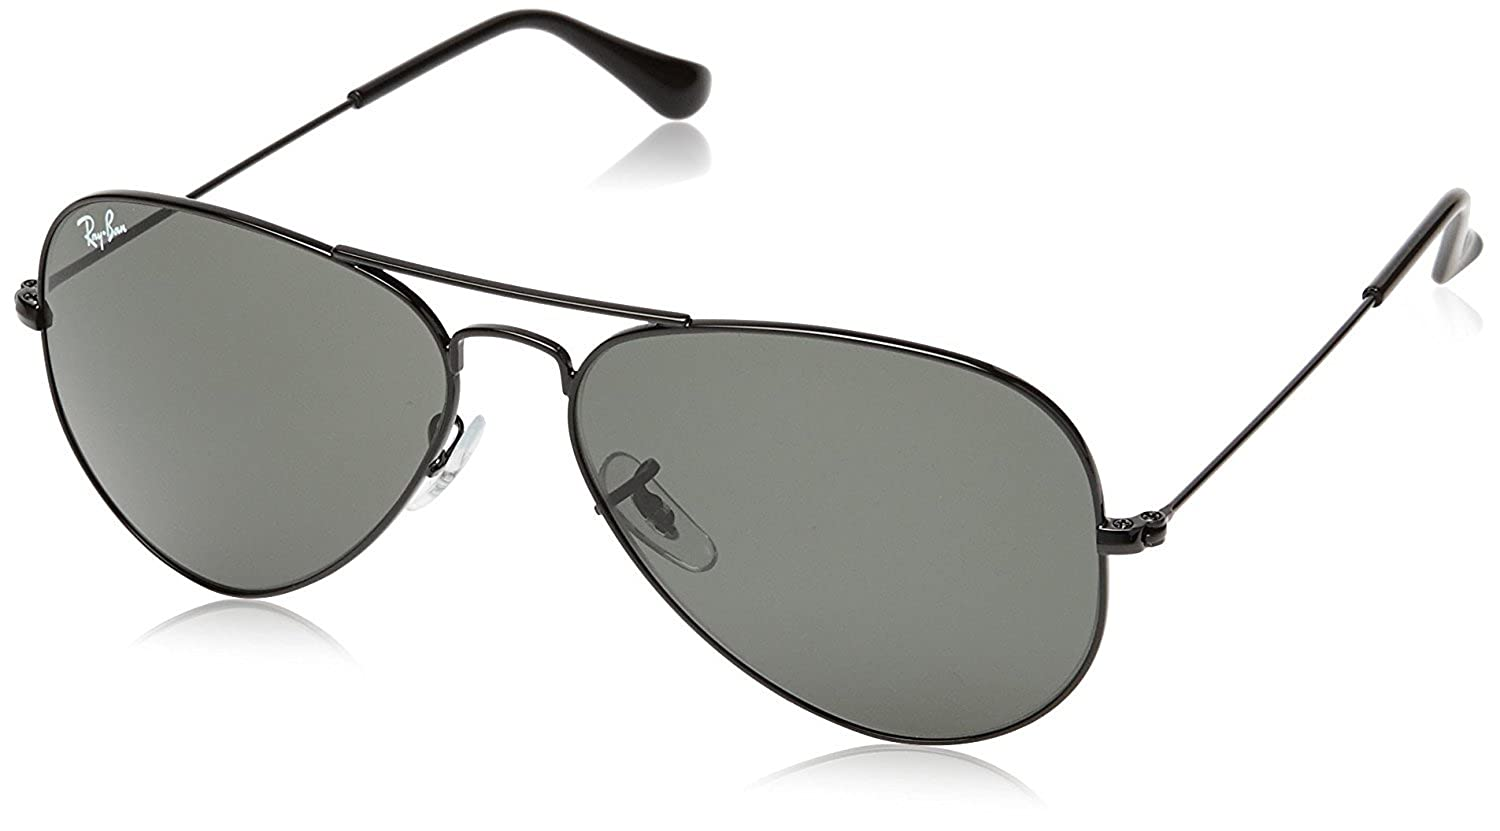 26bf7cd4f Ray-Ban Standard Aviator unisex Sunglasses (RB3025 L2823 58 14|58  millimeters|Green): Amazon.in: Clothing & Accessories